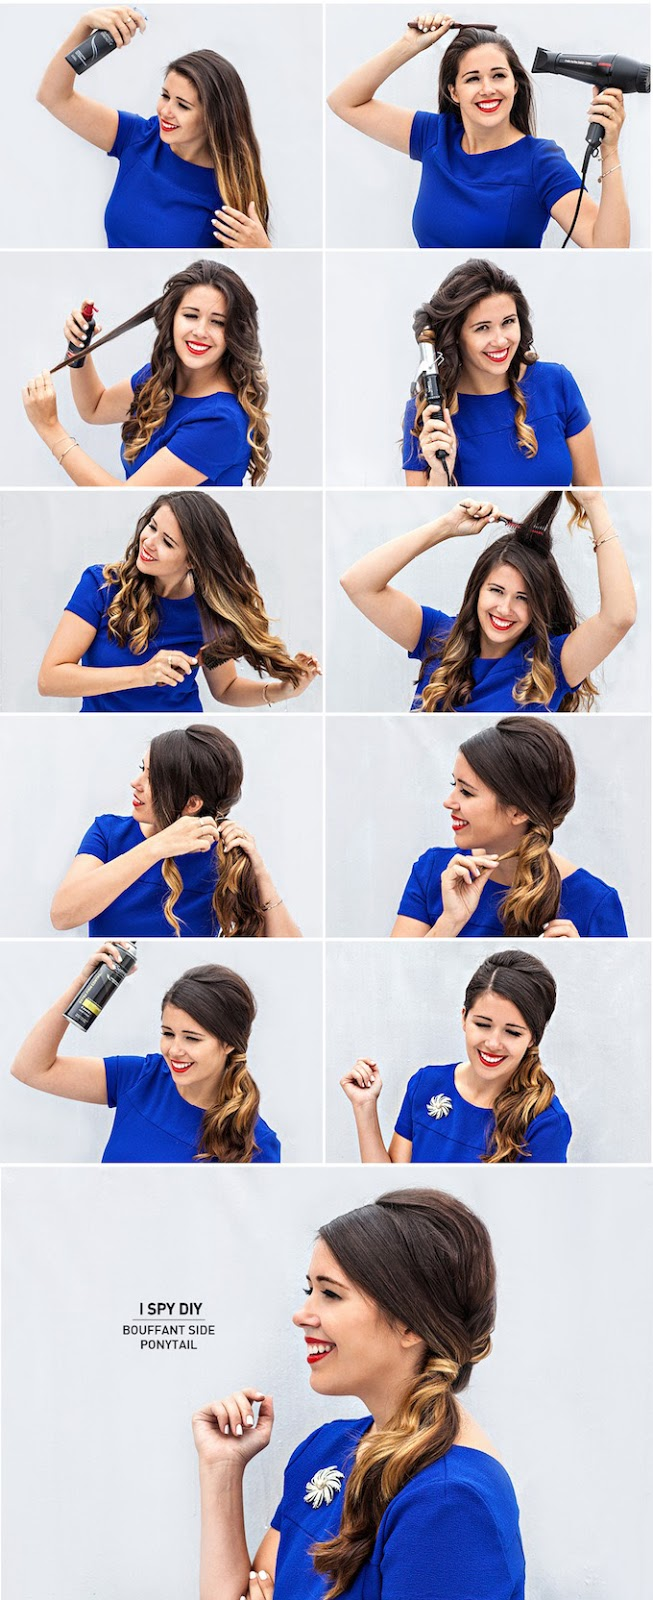 Ask The Expert Bouffant Side Pony Tail